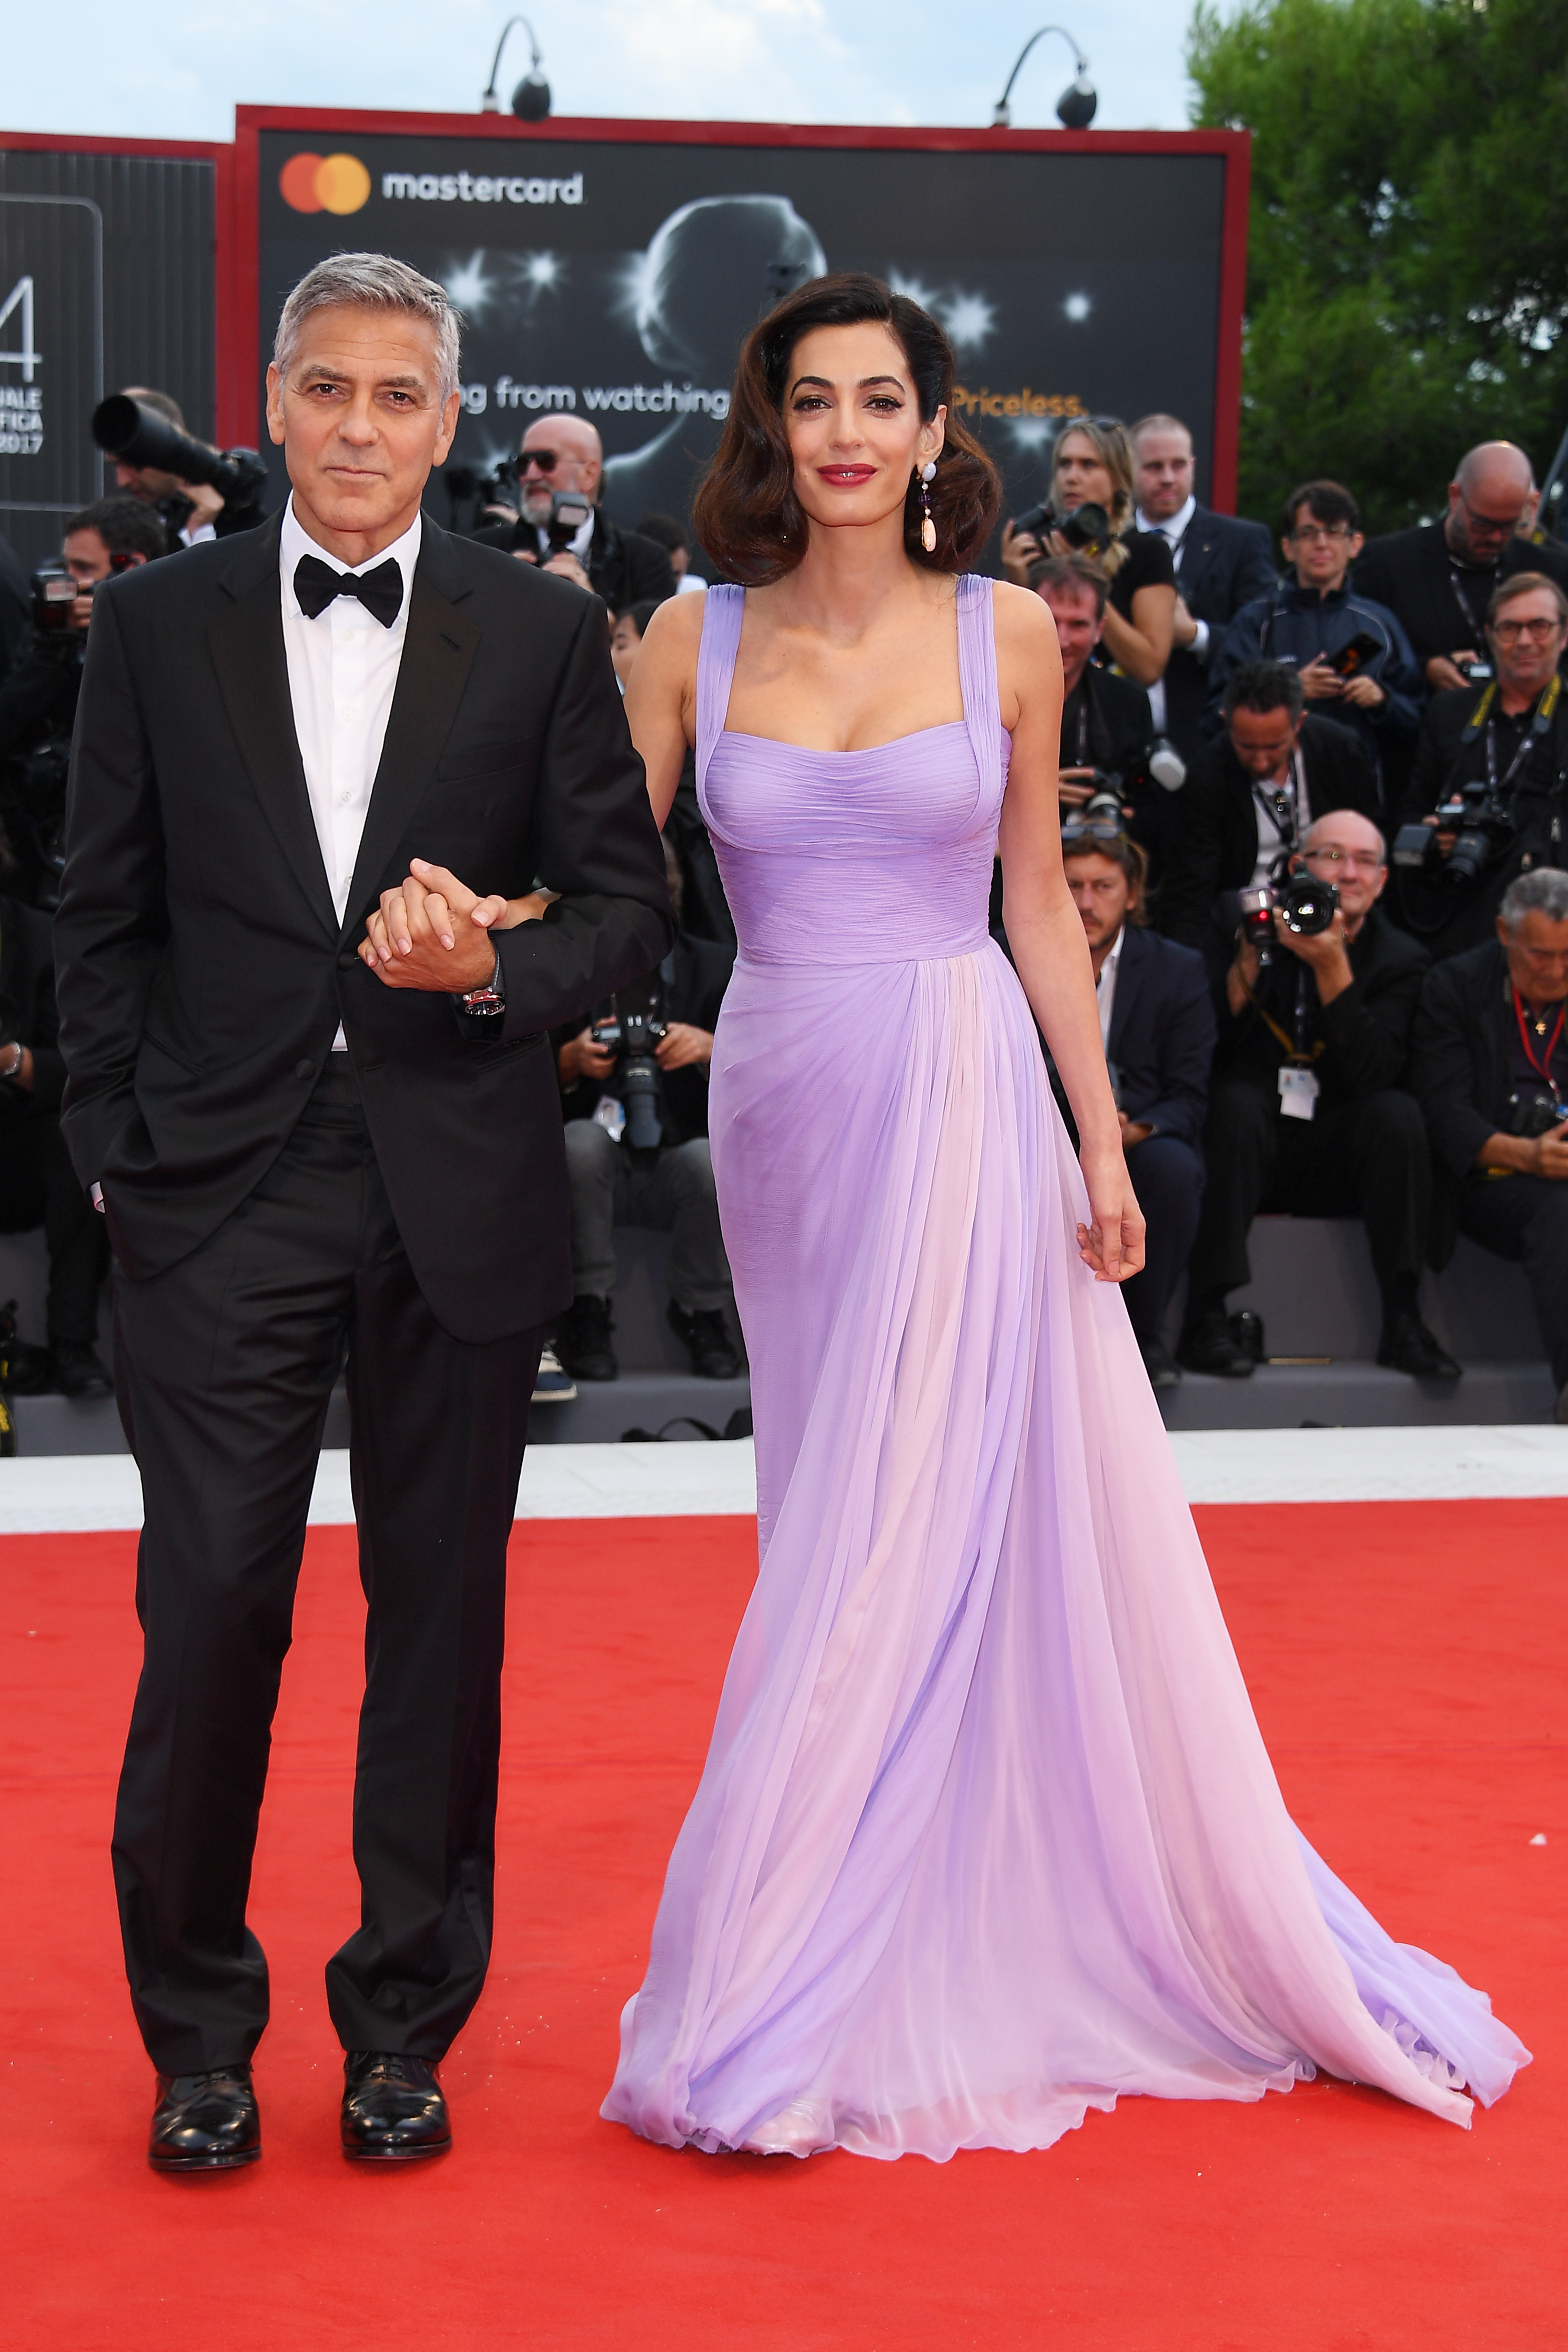 "<p>Move over Victoria and David Beckham, fashion has a new power couple in town and they go by the names of <a href=""https://style.nine.com.au/2018/06/08/14/59/afi-gala-george-clooney"" target=""_blank"" draggable=""false"">George and Amal Clooney</a>.</p> <p>The stylish pair raise the sartorial stakes every time they step on to the red carpet, turning heads and giving us all new relationship goals.</p> <p>All eyes have been on the <a href=""https://style.nine.com.au/2018/05/09/14/05/style-evolution-amal-clooney"" target=""_blank"" draggable=""false"">human rights lawyer </a>since she was thrust into the spotlight when after a short courtship, she became the fiancé of George in 2014. The pair wasted no time and married later that same year, giving us many bow-down moments when they step out together.</p> <p>Always polished, chic and elegant, <a href=""https://style.nine.com.au/2018/05/09/14/05/style-evolution-amal-clooney"" target=""_blank"" draggable=""false"">Amal's refined yet adventurous style</a> has earned her a place on many best dressed lists. </p> <p>Like the rest of us, George isn't surprised.</p> <p>""It's amazing, because she's always — since the day I met her — she's always had this insanely . . . it's eccentric, but it's fun, sense of fashion,"" George told E! News. ""How she does it while she's got 11 cases she's working on, and she was teaching at Columbia, and she's still, like, 'I want to wear that dress.' It's crazy. It has been sort of fascinating to watch, because she has such great taste.""</p> <p>George, too, brings plenty to the table in the style stakes. The actor has old Hollywood glamour in spades, and is constantly setting the bar for black-tie on the red carpet.</p> <p>Click through to check out ten times the Clooney's have wowed on the red carpet.</p>"